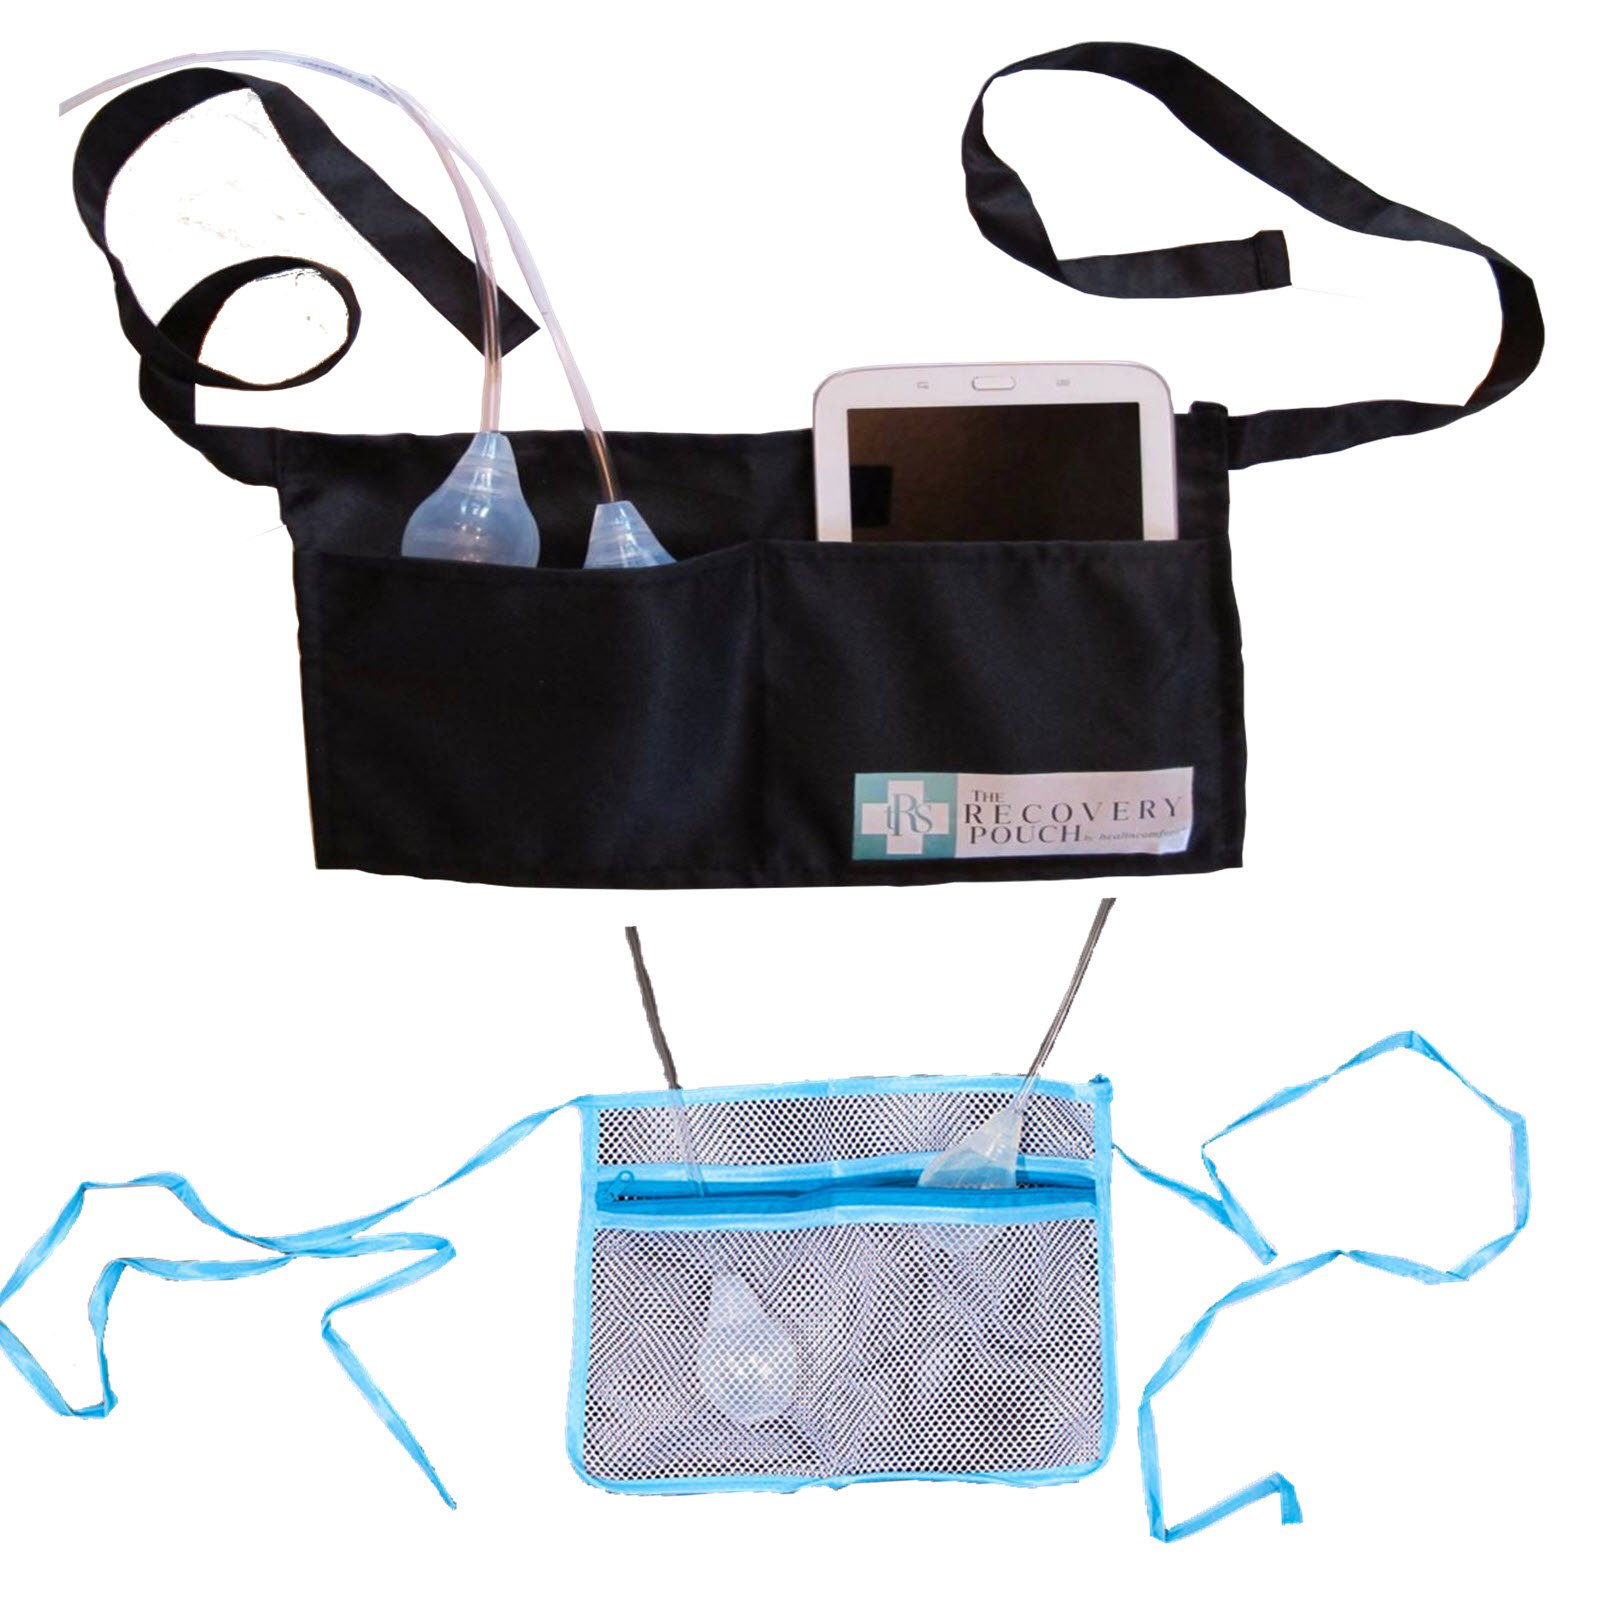 Heal in Comfort Wet & Dry Drain Pouch Kit Solution for Temporary Surgical Drain Management